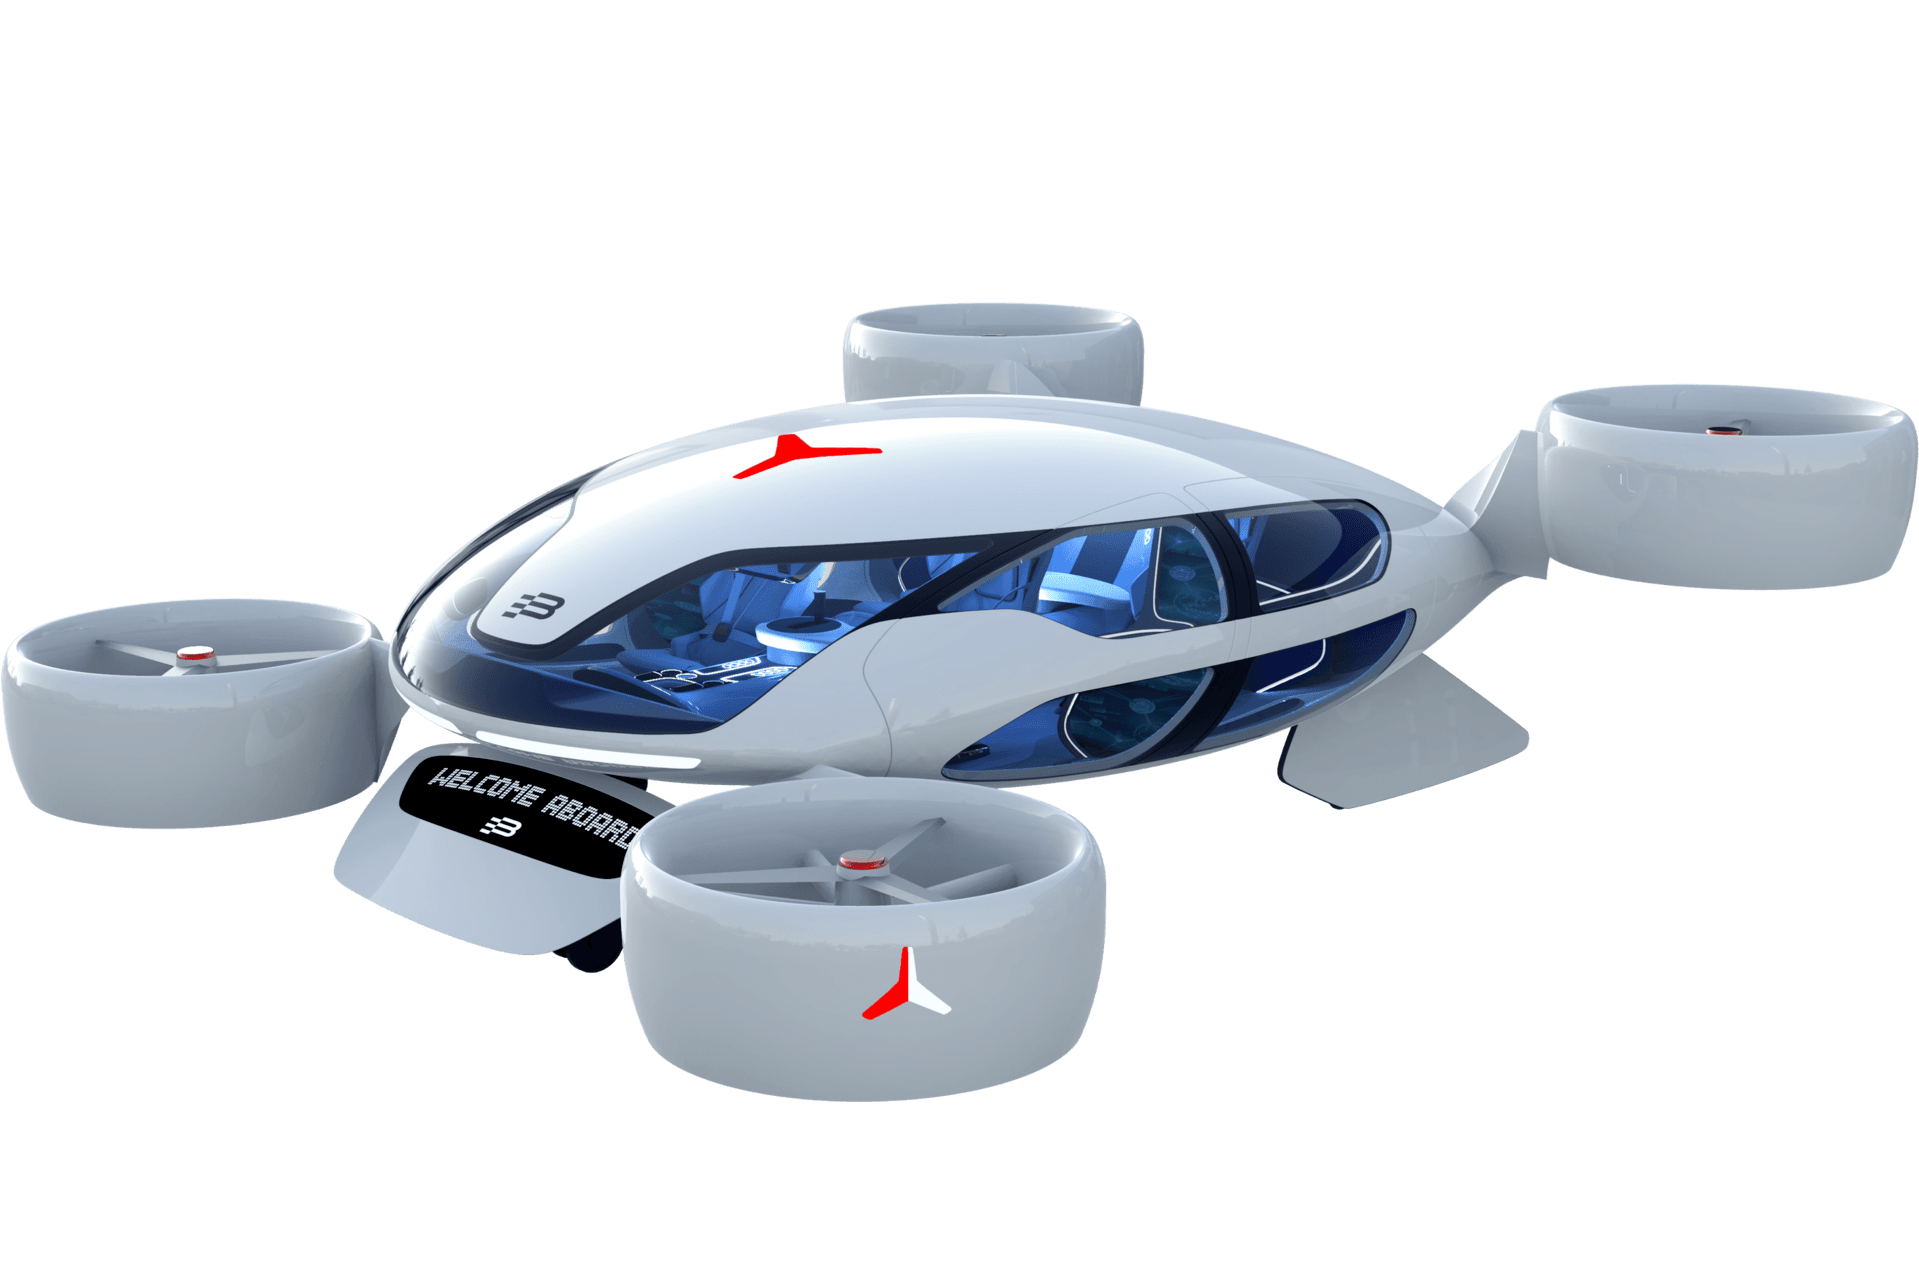 Bartini's eVTOL design, with eight tilting, coaxial ducted rotors, promises 550-km (342-mi) ranges and 300-km/h (186-mph) speeds thanks to HyPoint's turbo air-cooled hydrogen fuel cell powertrains